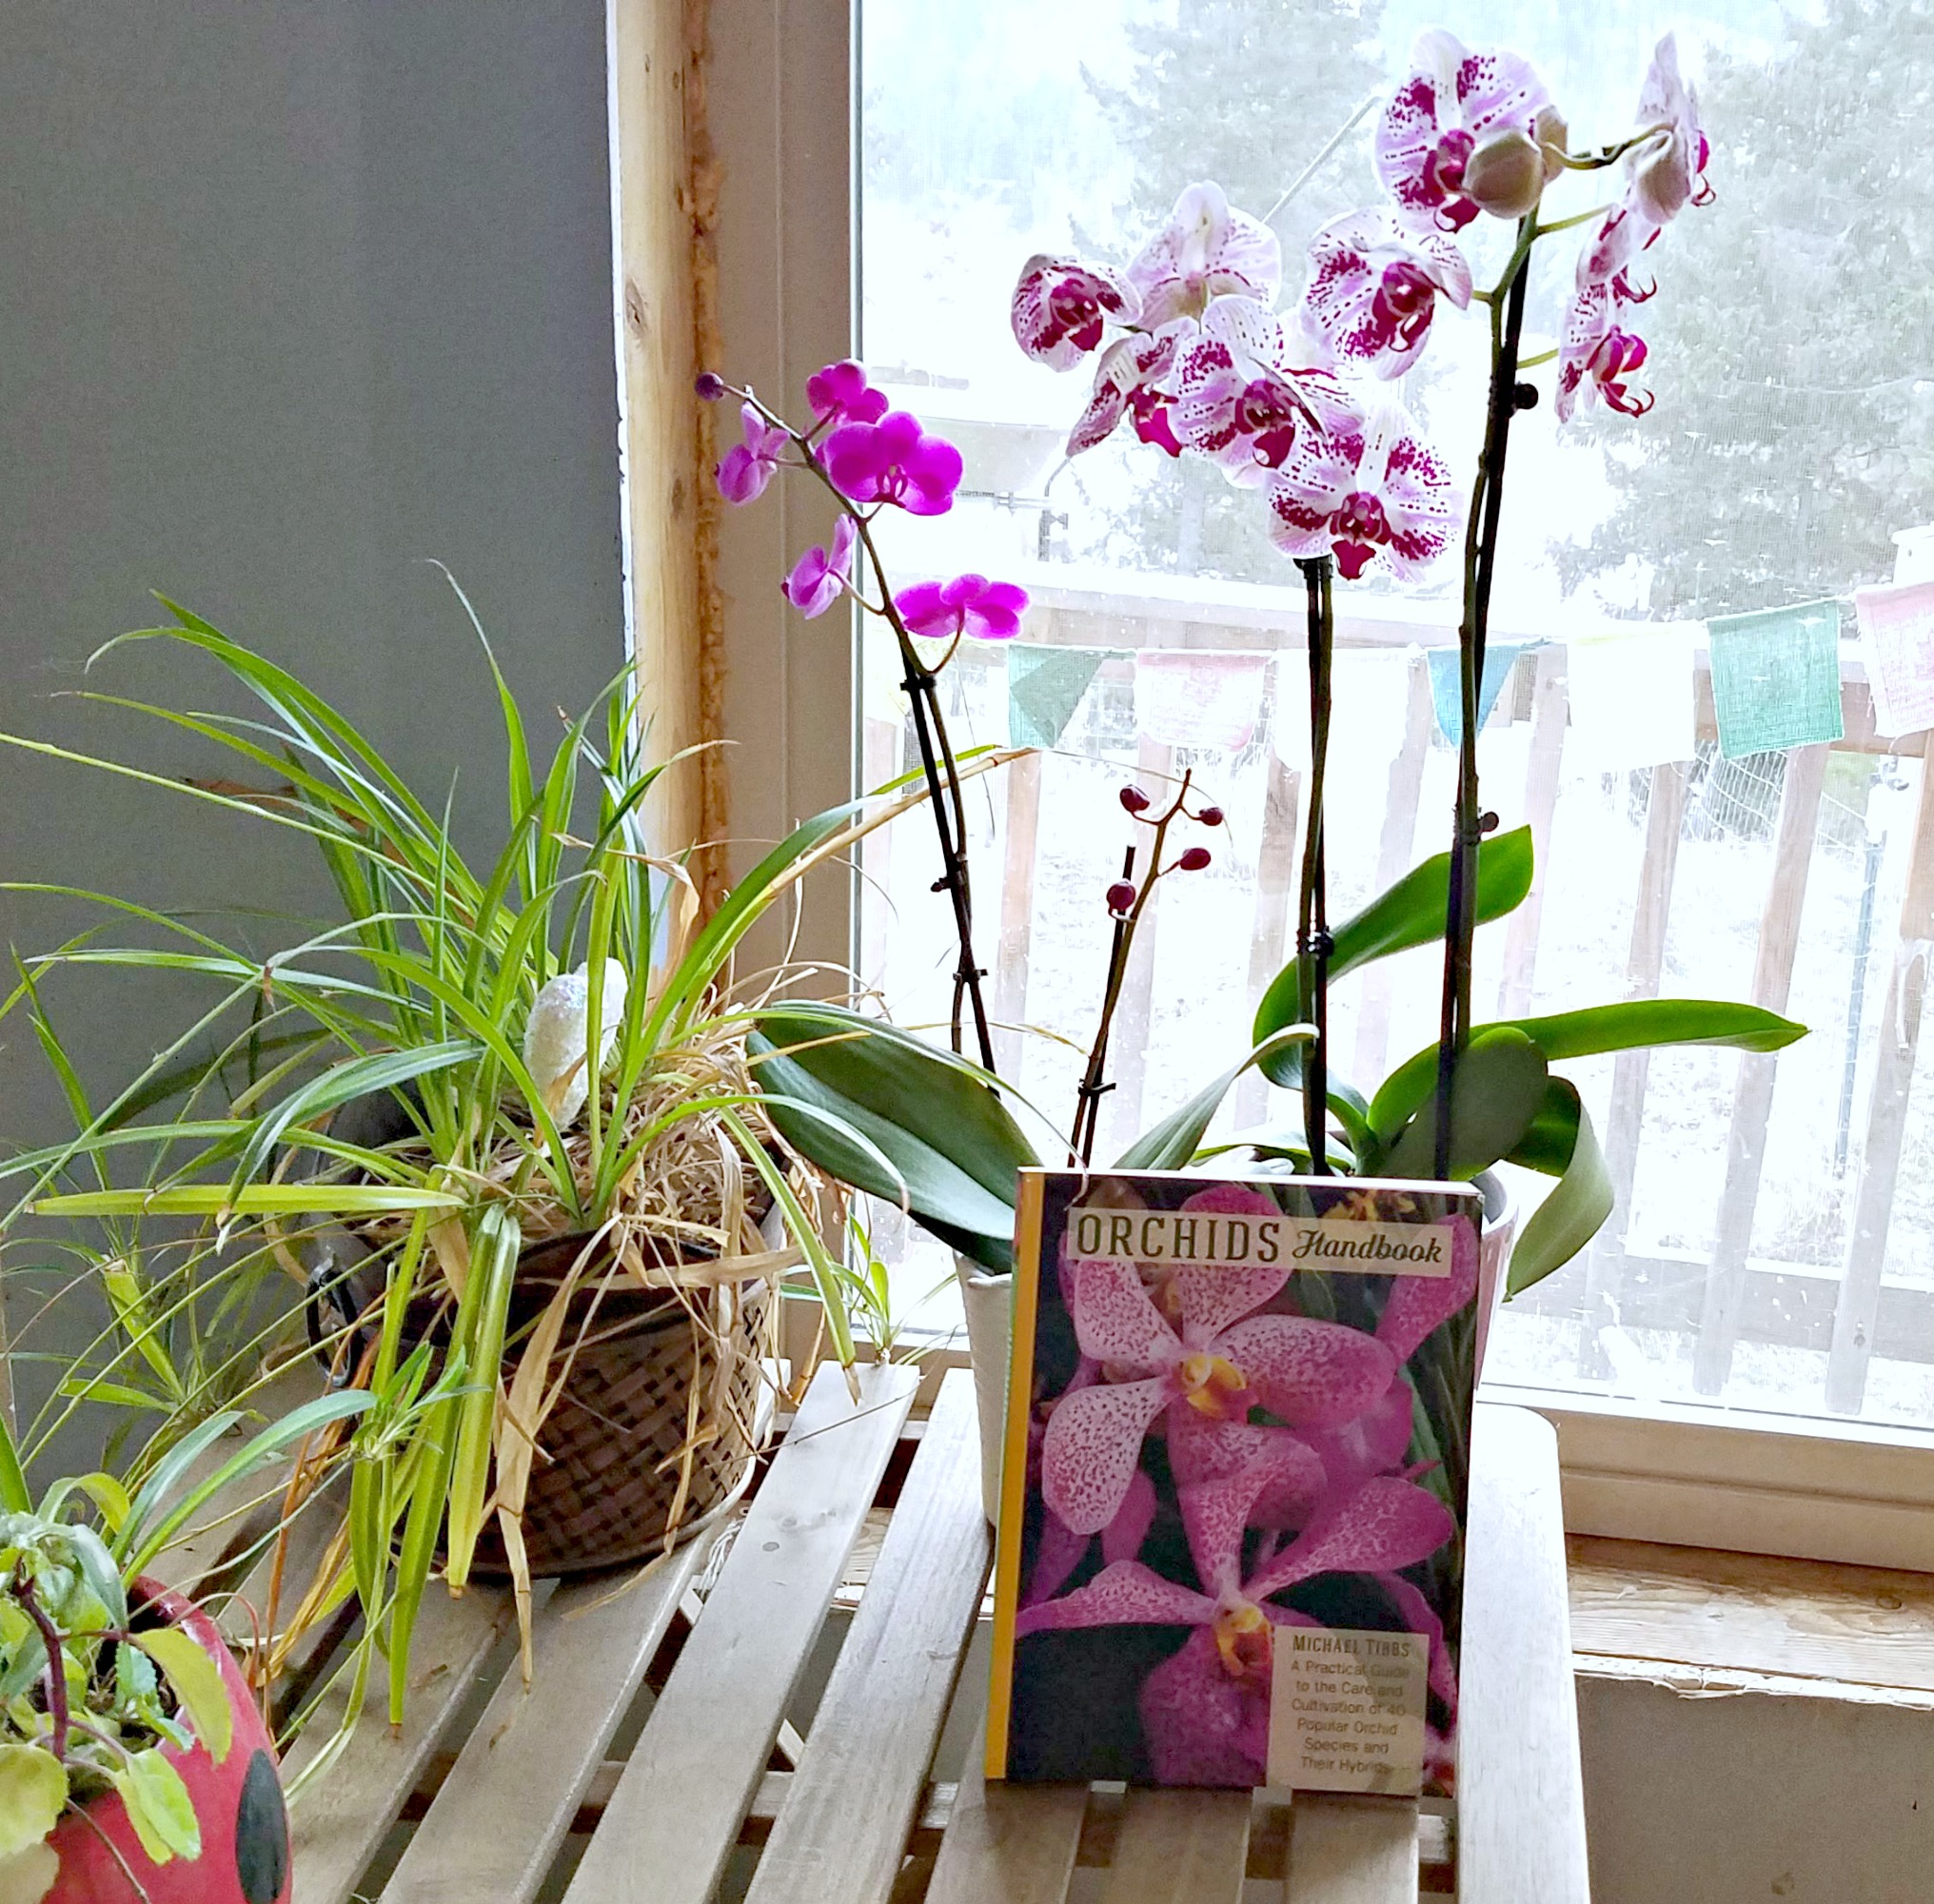 Orchids Handbook, phalaenopsis orchids, AD